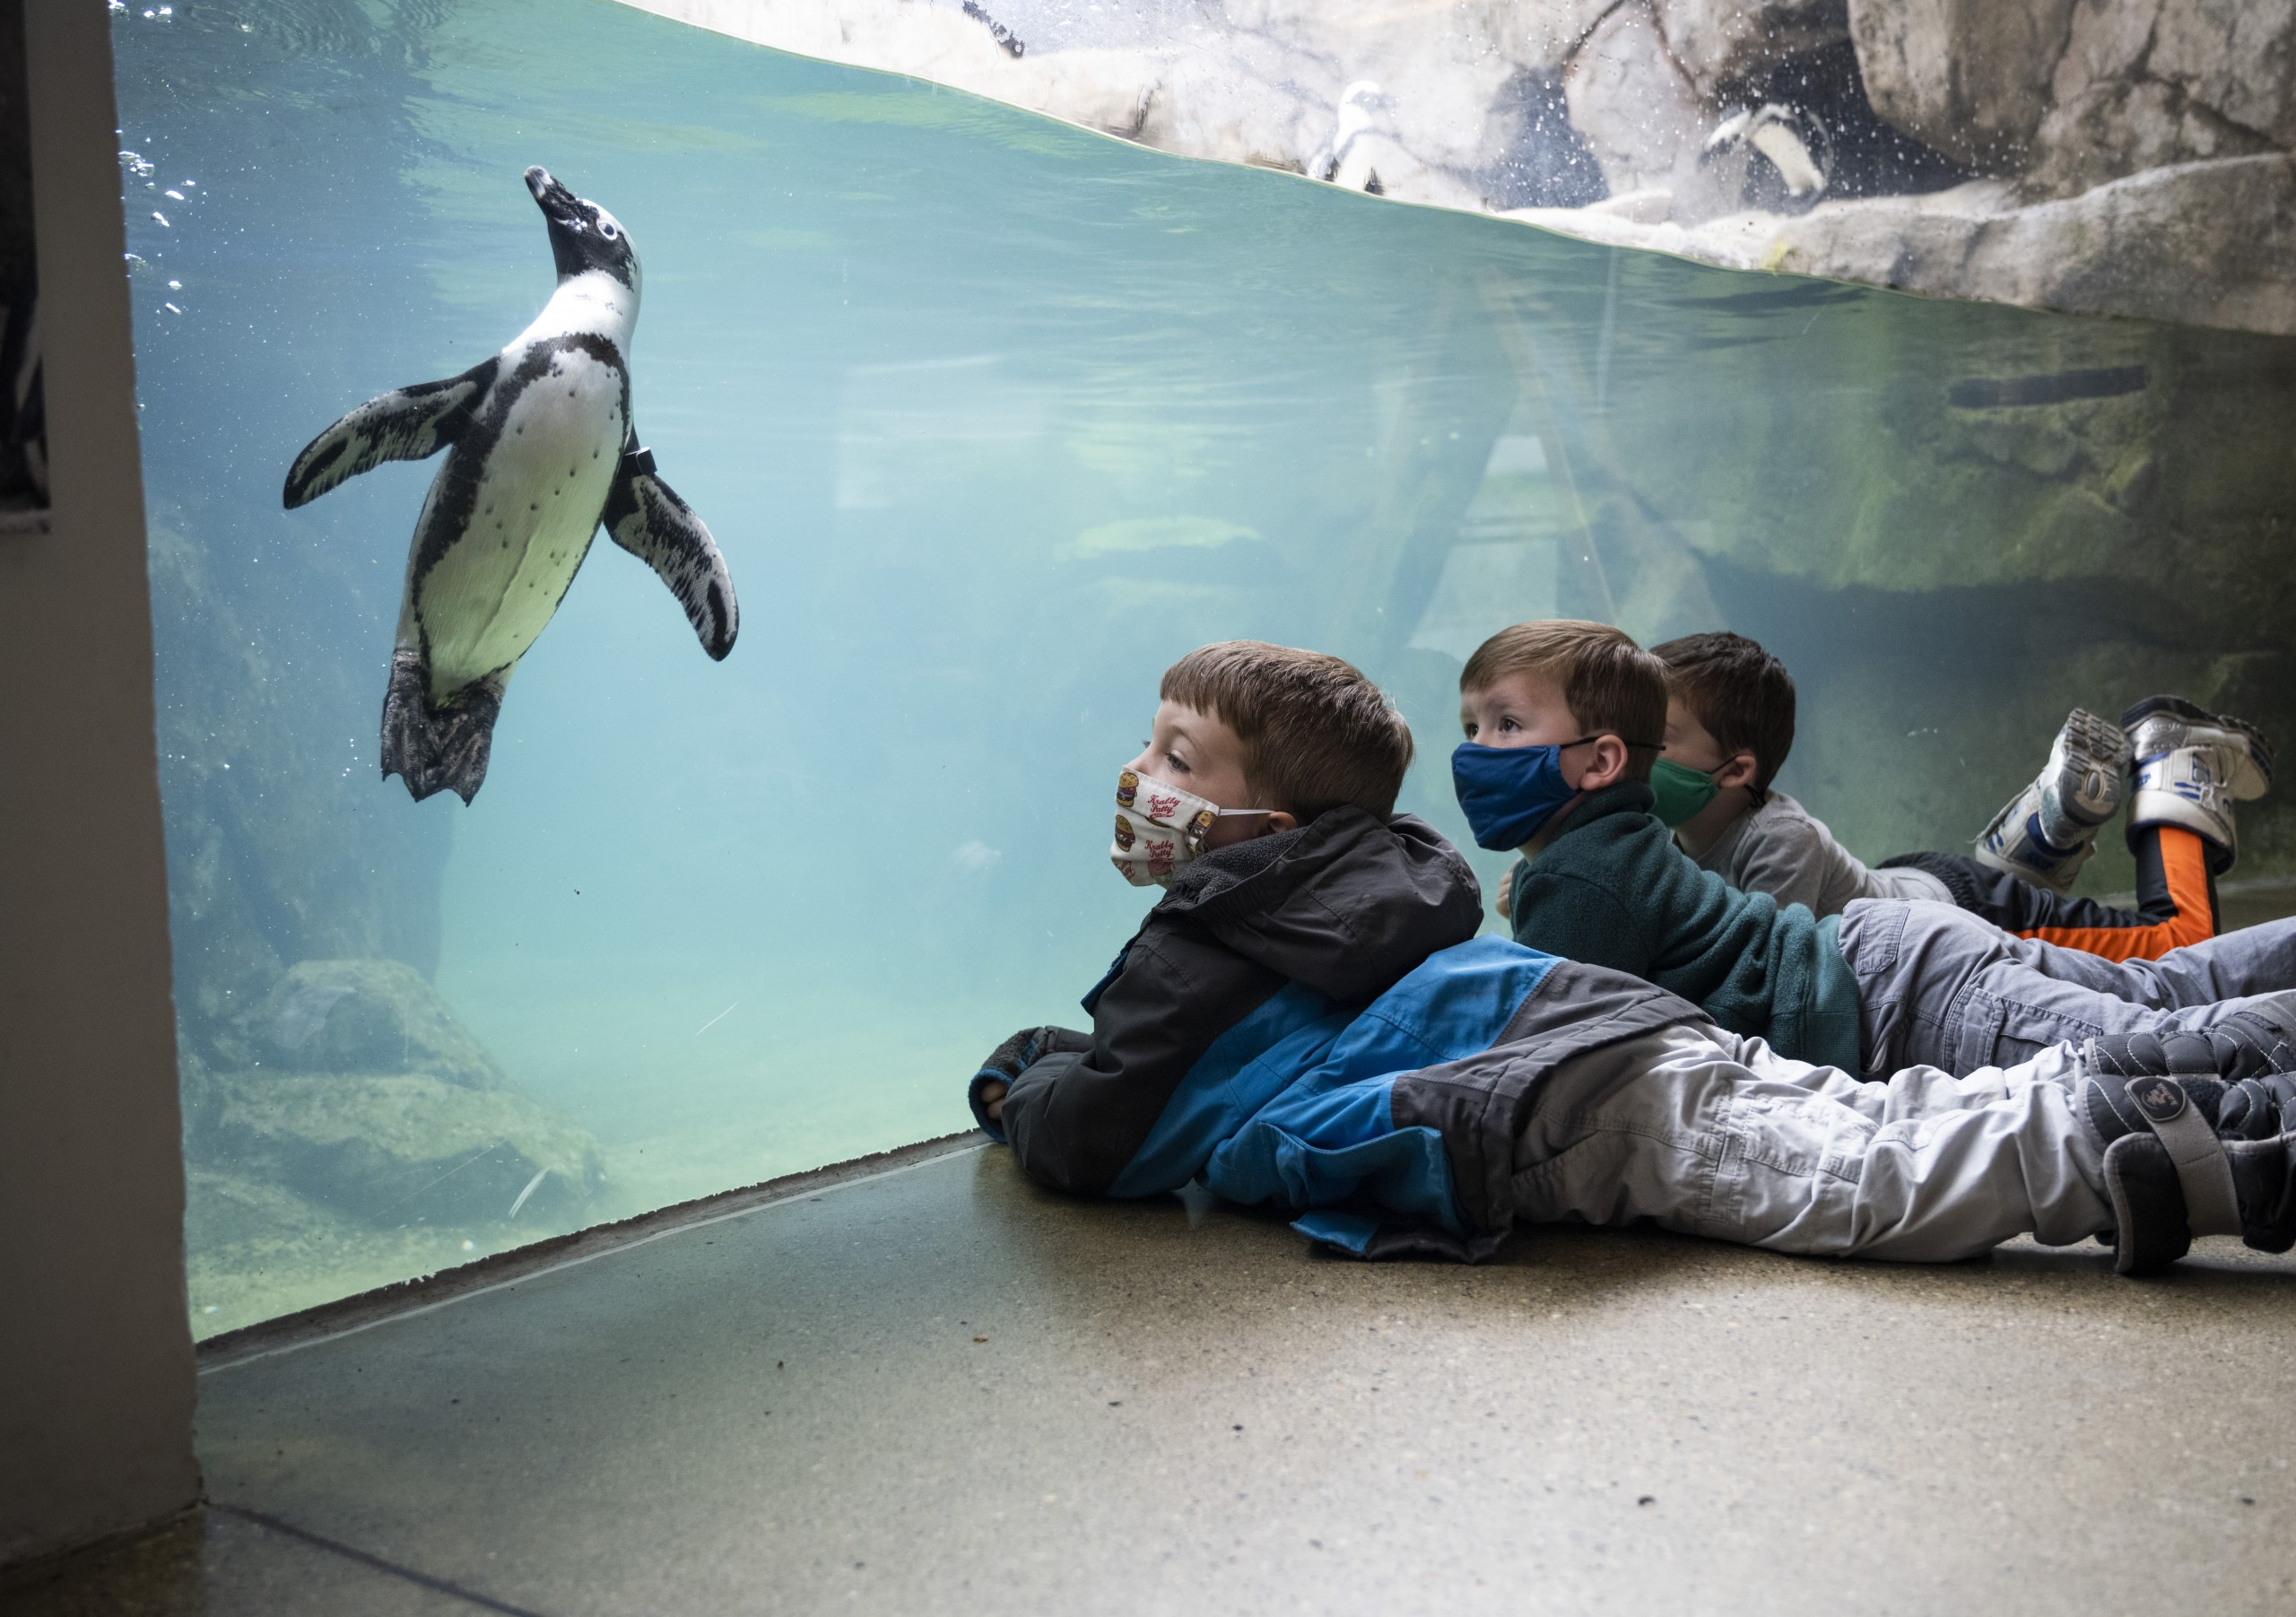 Kids In Penguin Point National Aviary 2021 Mike Faix